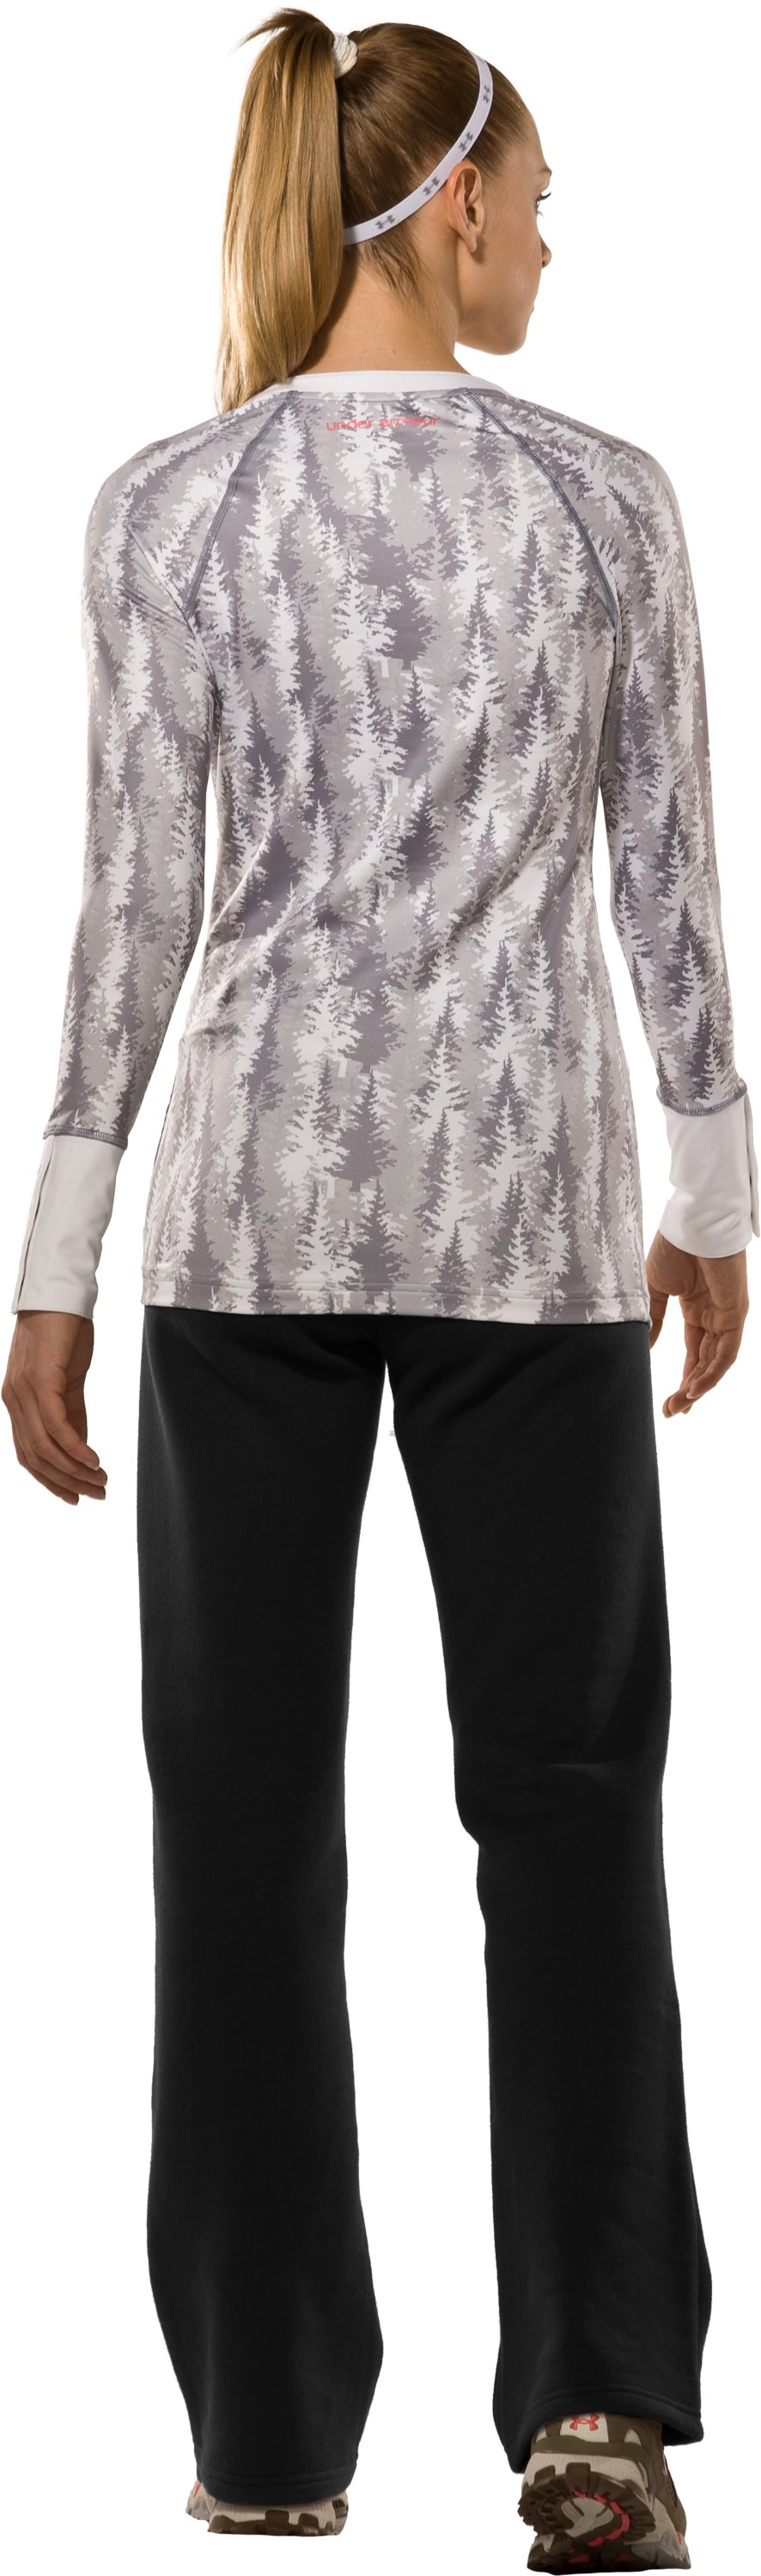 Women's EVO ColdGear® Tree Print Henley Shirt, White, Back